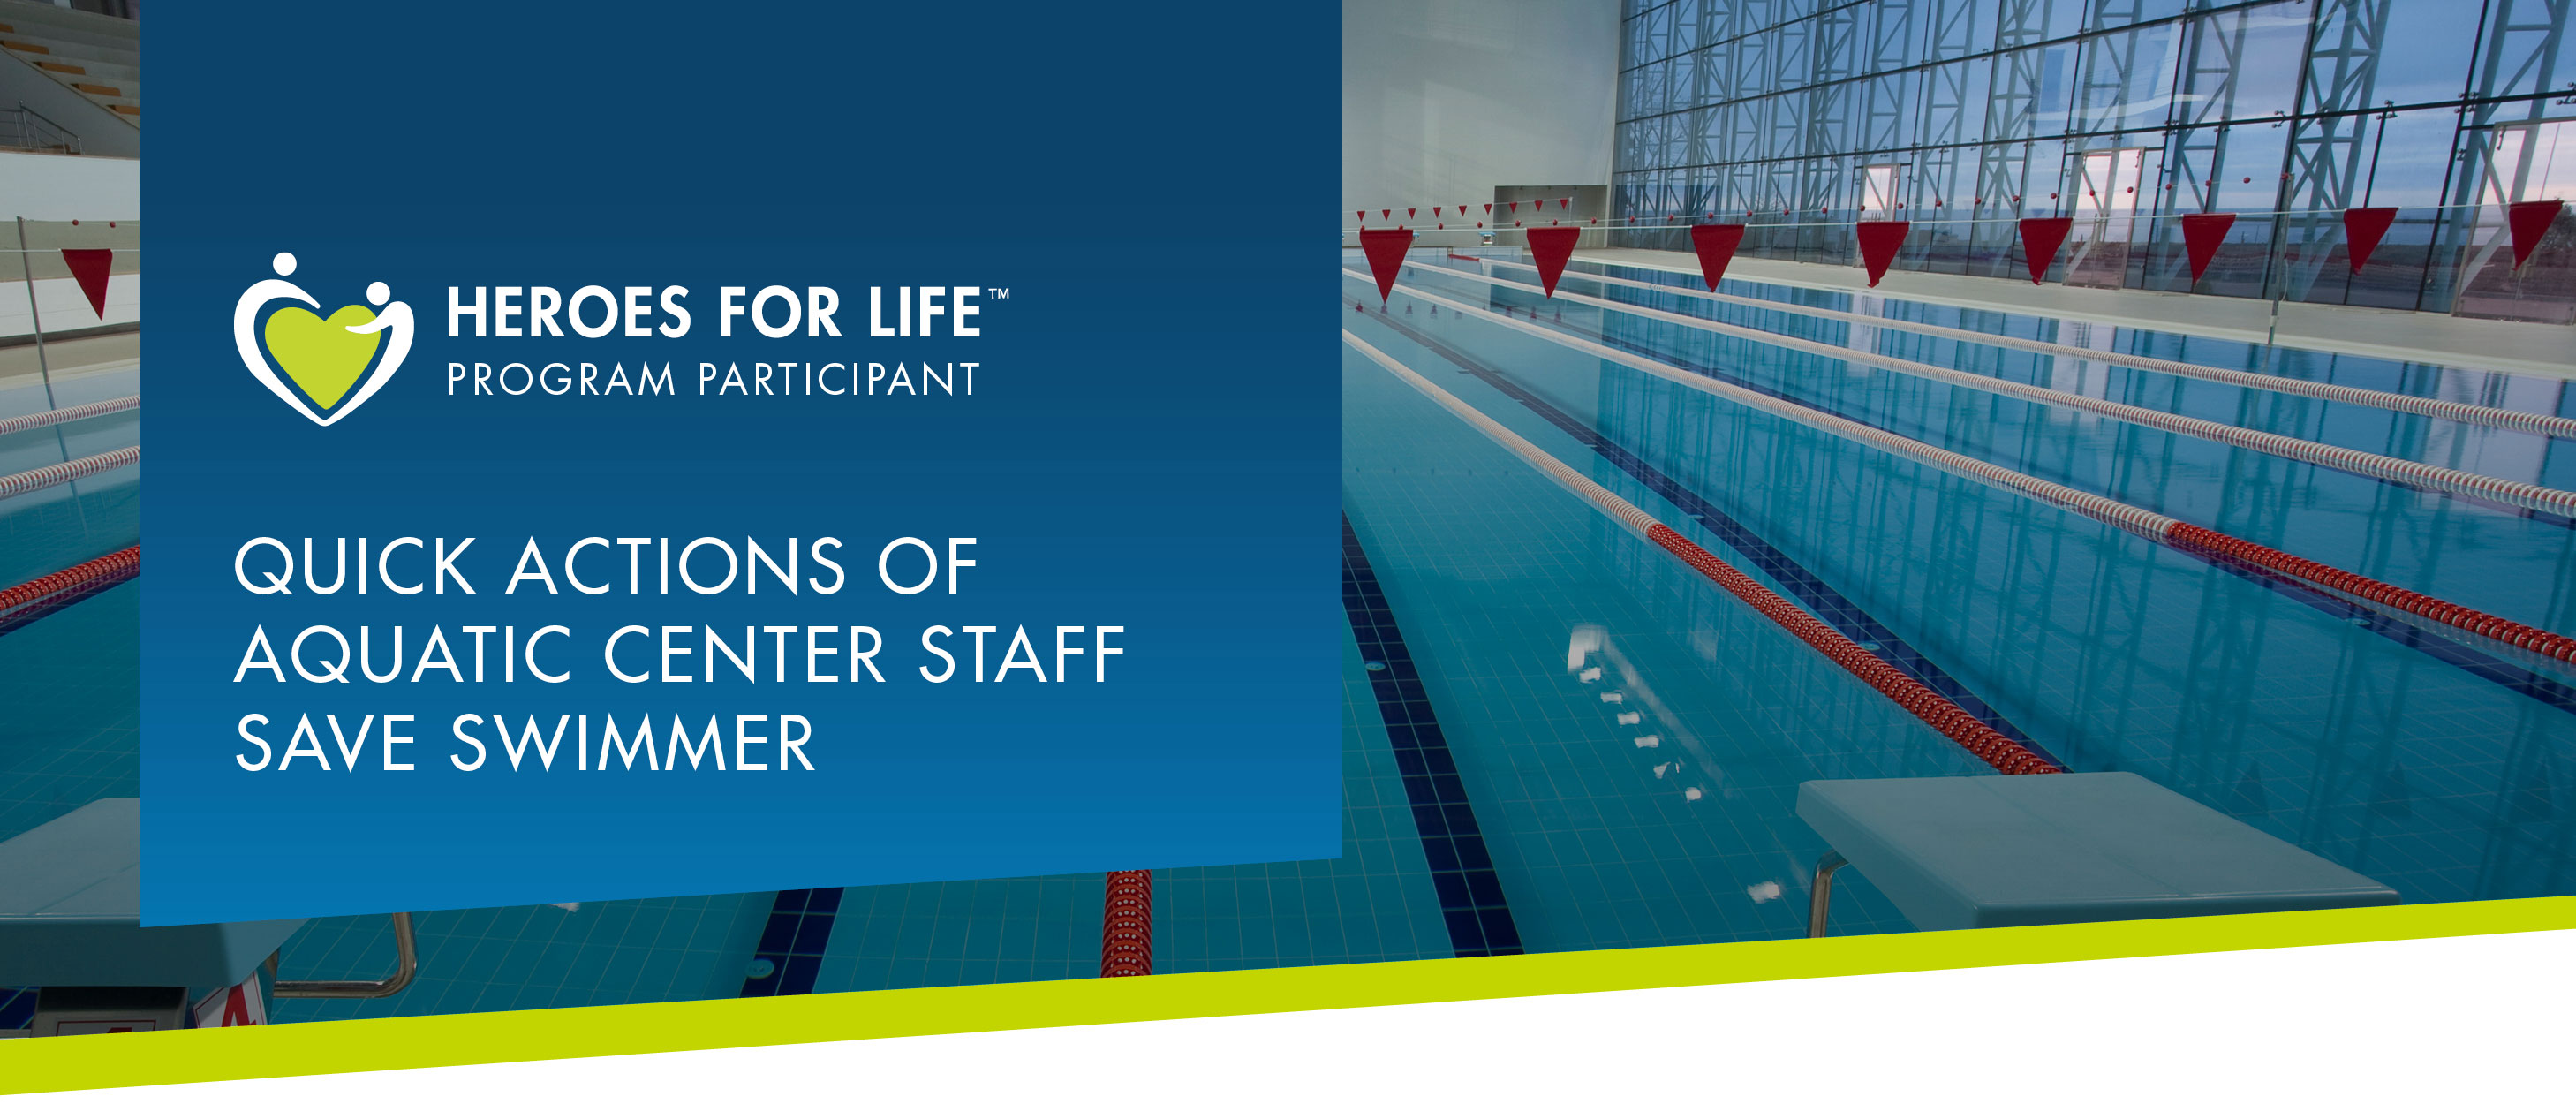 QUICK ACTIONS OF AQUATIC CENTER STAFF SAVE SWIMMER